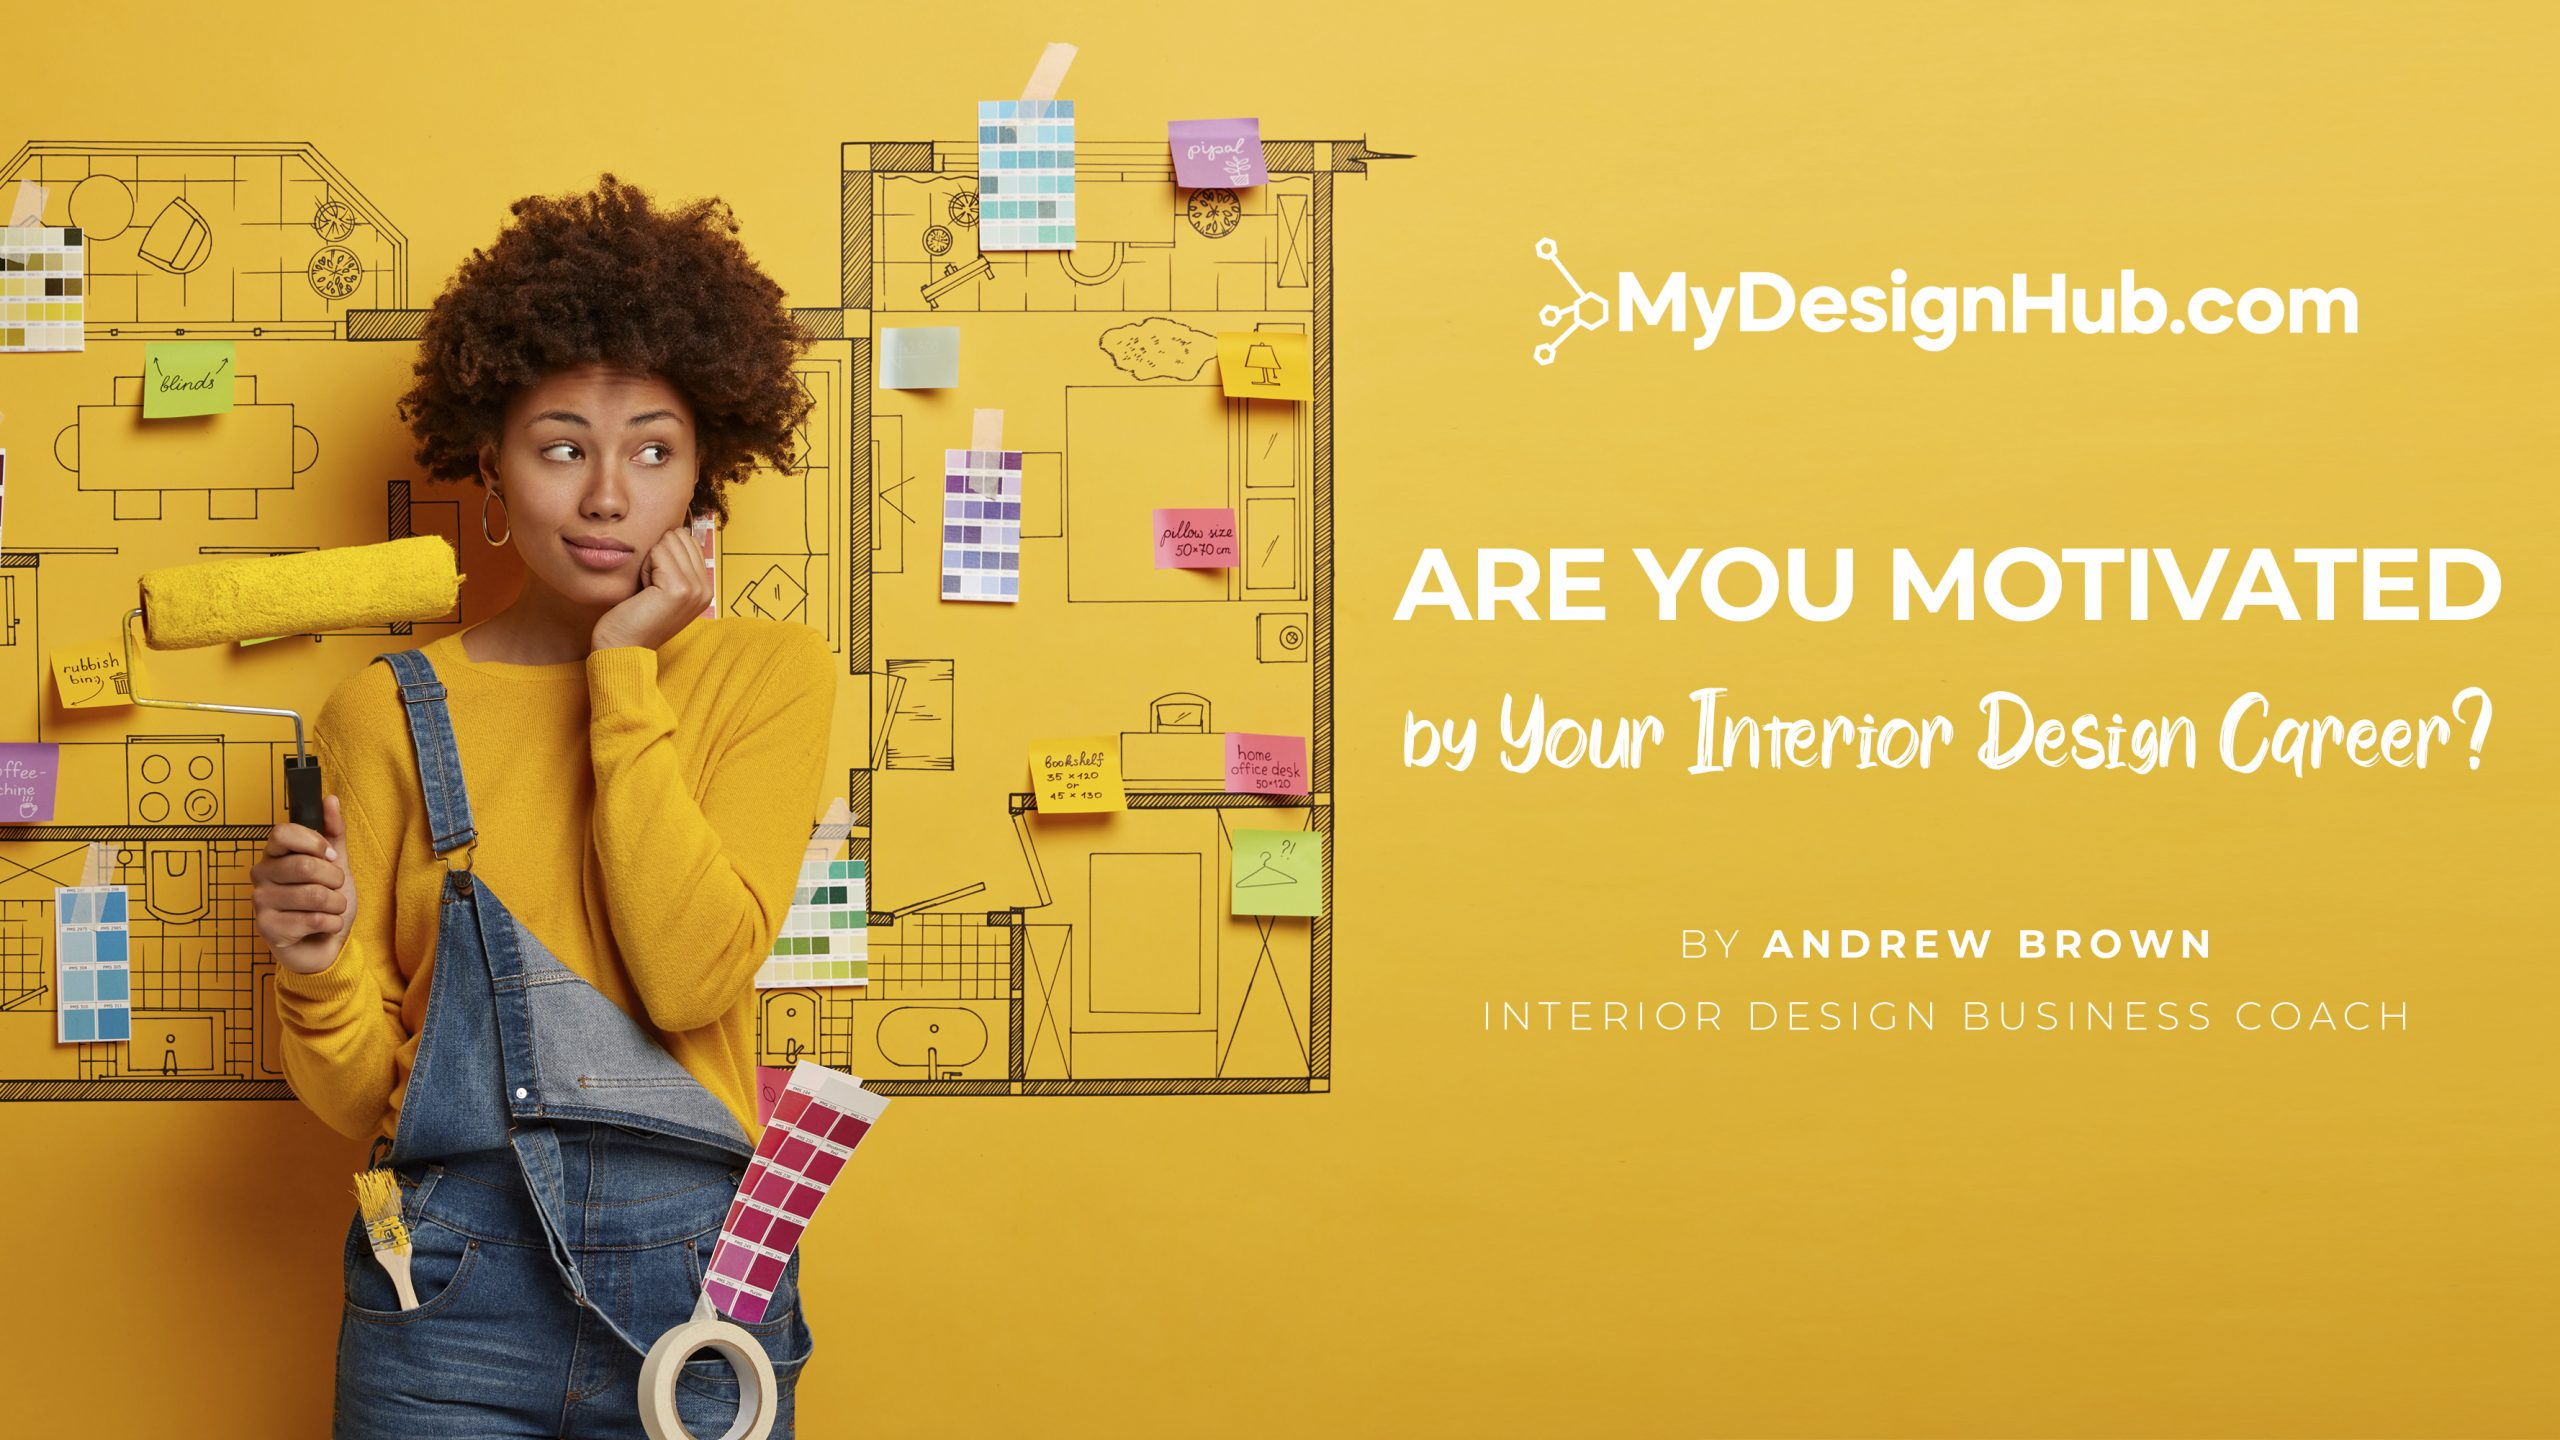 Are You Motivated by Your Interior Design Career?